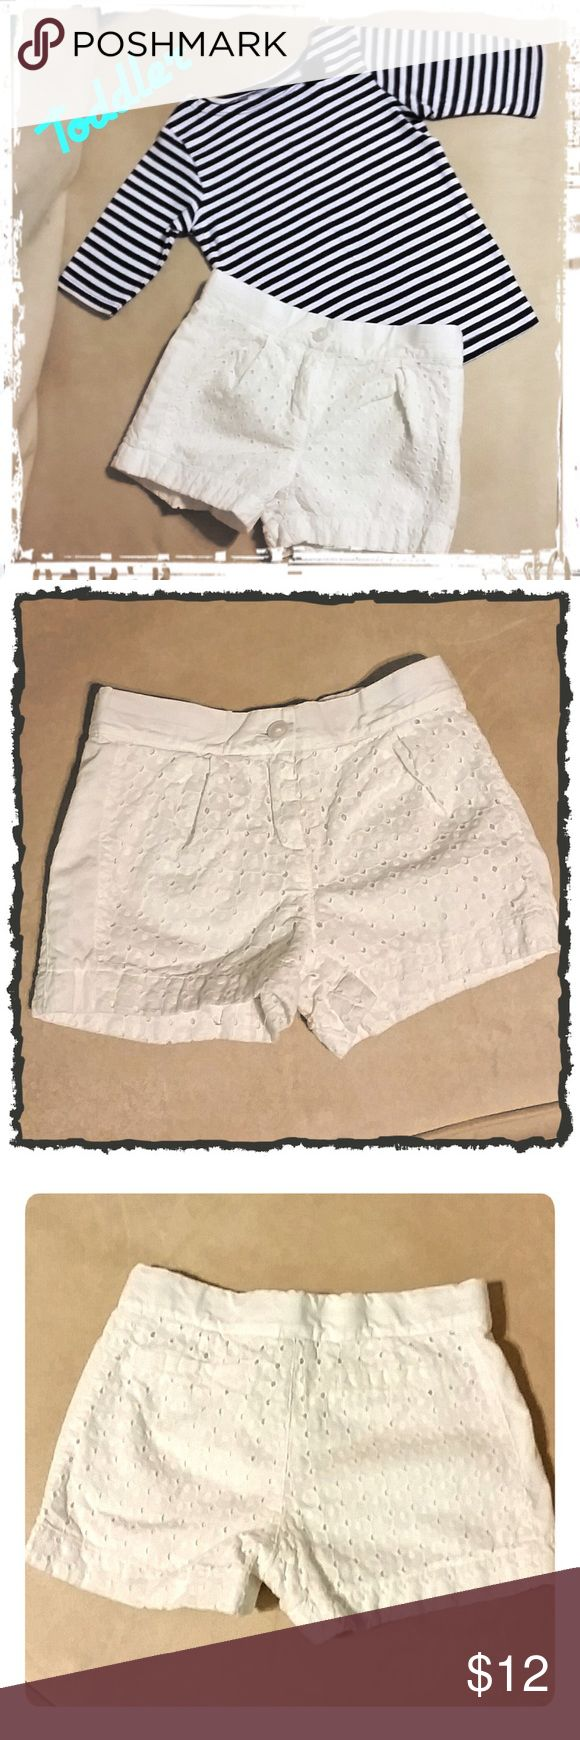 Toddler White Eyelet Shorts White Eyelet adjustable Shorts by Janie and Jack. Button and zipper front with adjustable sides. Size 4. Great condition! Janie and Jack Bottoms Shorts